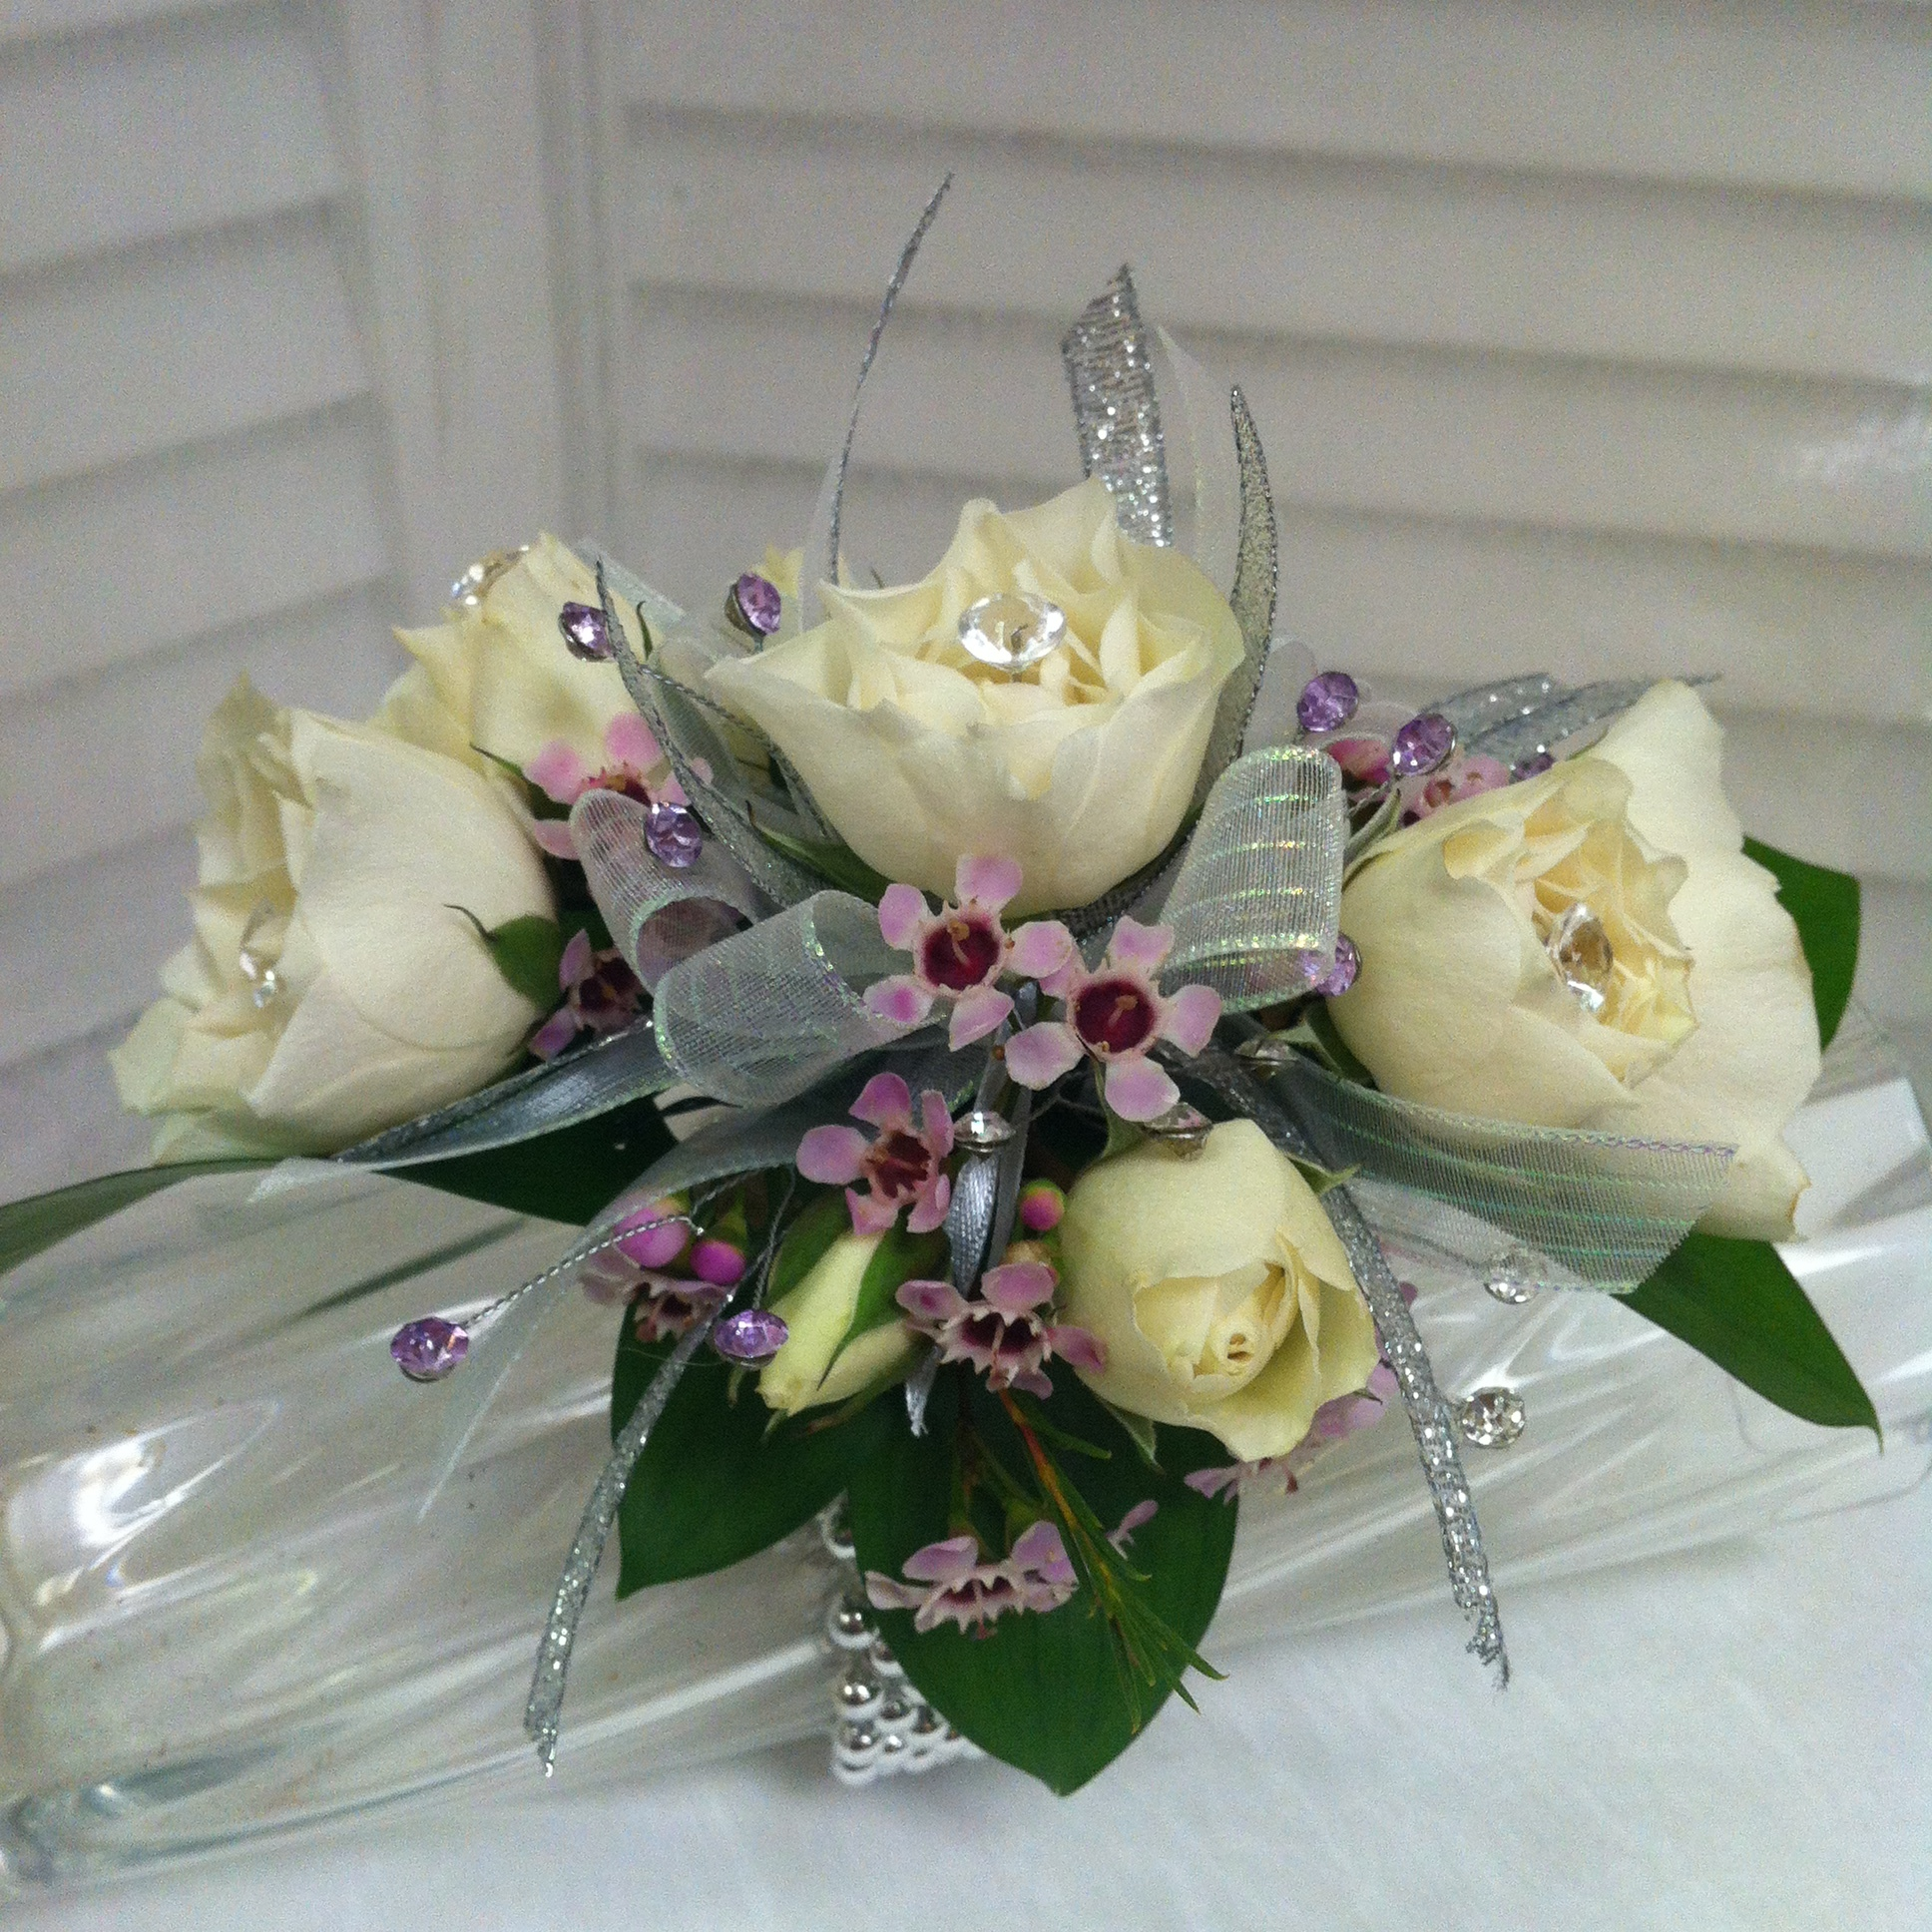 Plus Corsage (30) with Extra Jewels (5), Extra Flowers (5), Upgraded Bow (2) $42